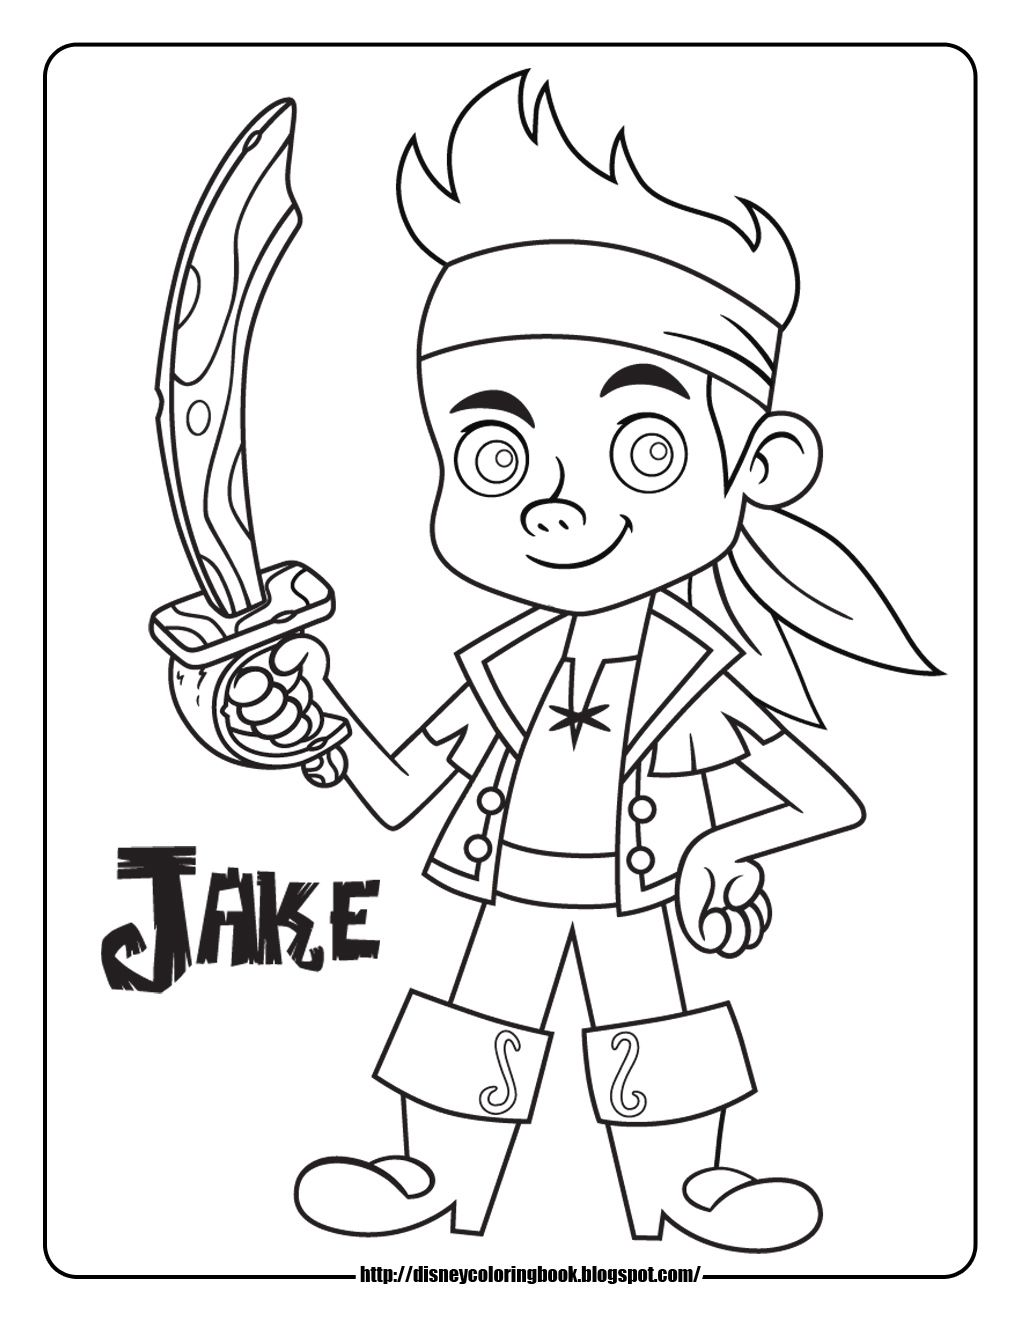 jake and the neverland pirates coloring pages Jake Coloring Sheet #JakeAndTheNeverlandPirates #ColoringSheets  jake and the neverland pirates coloring pages